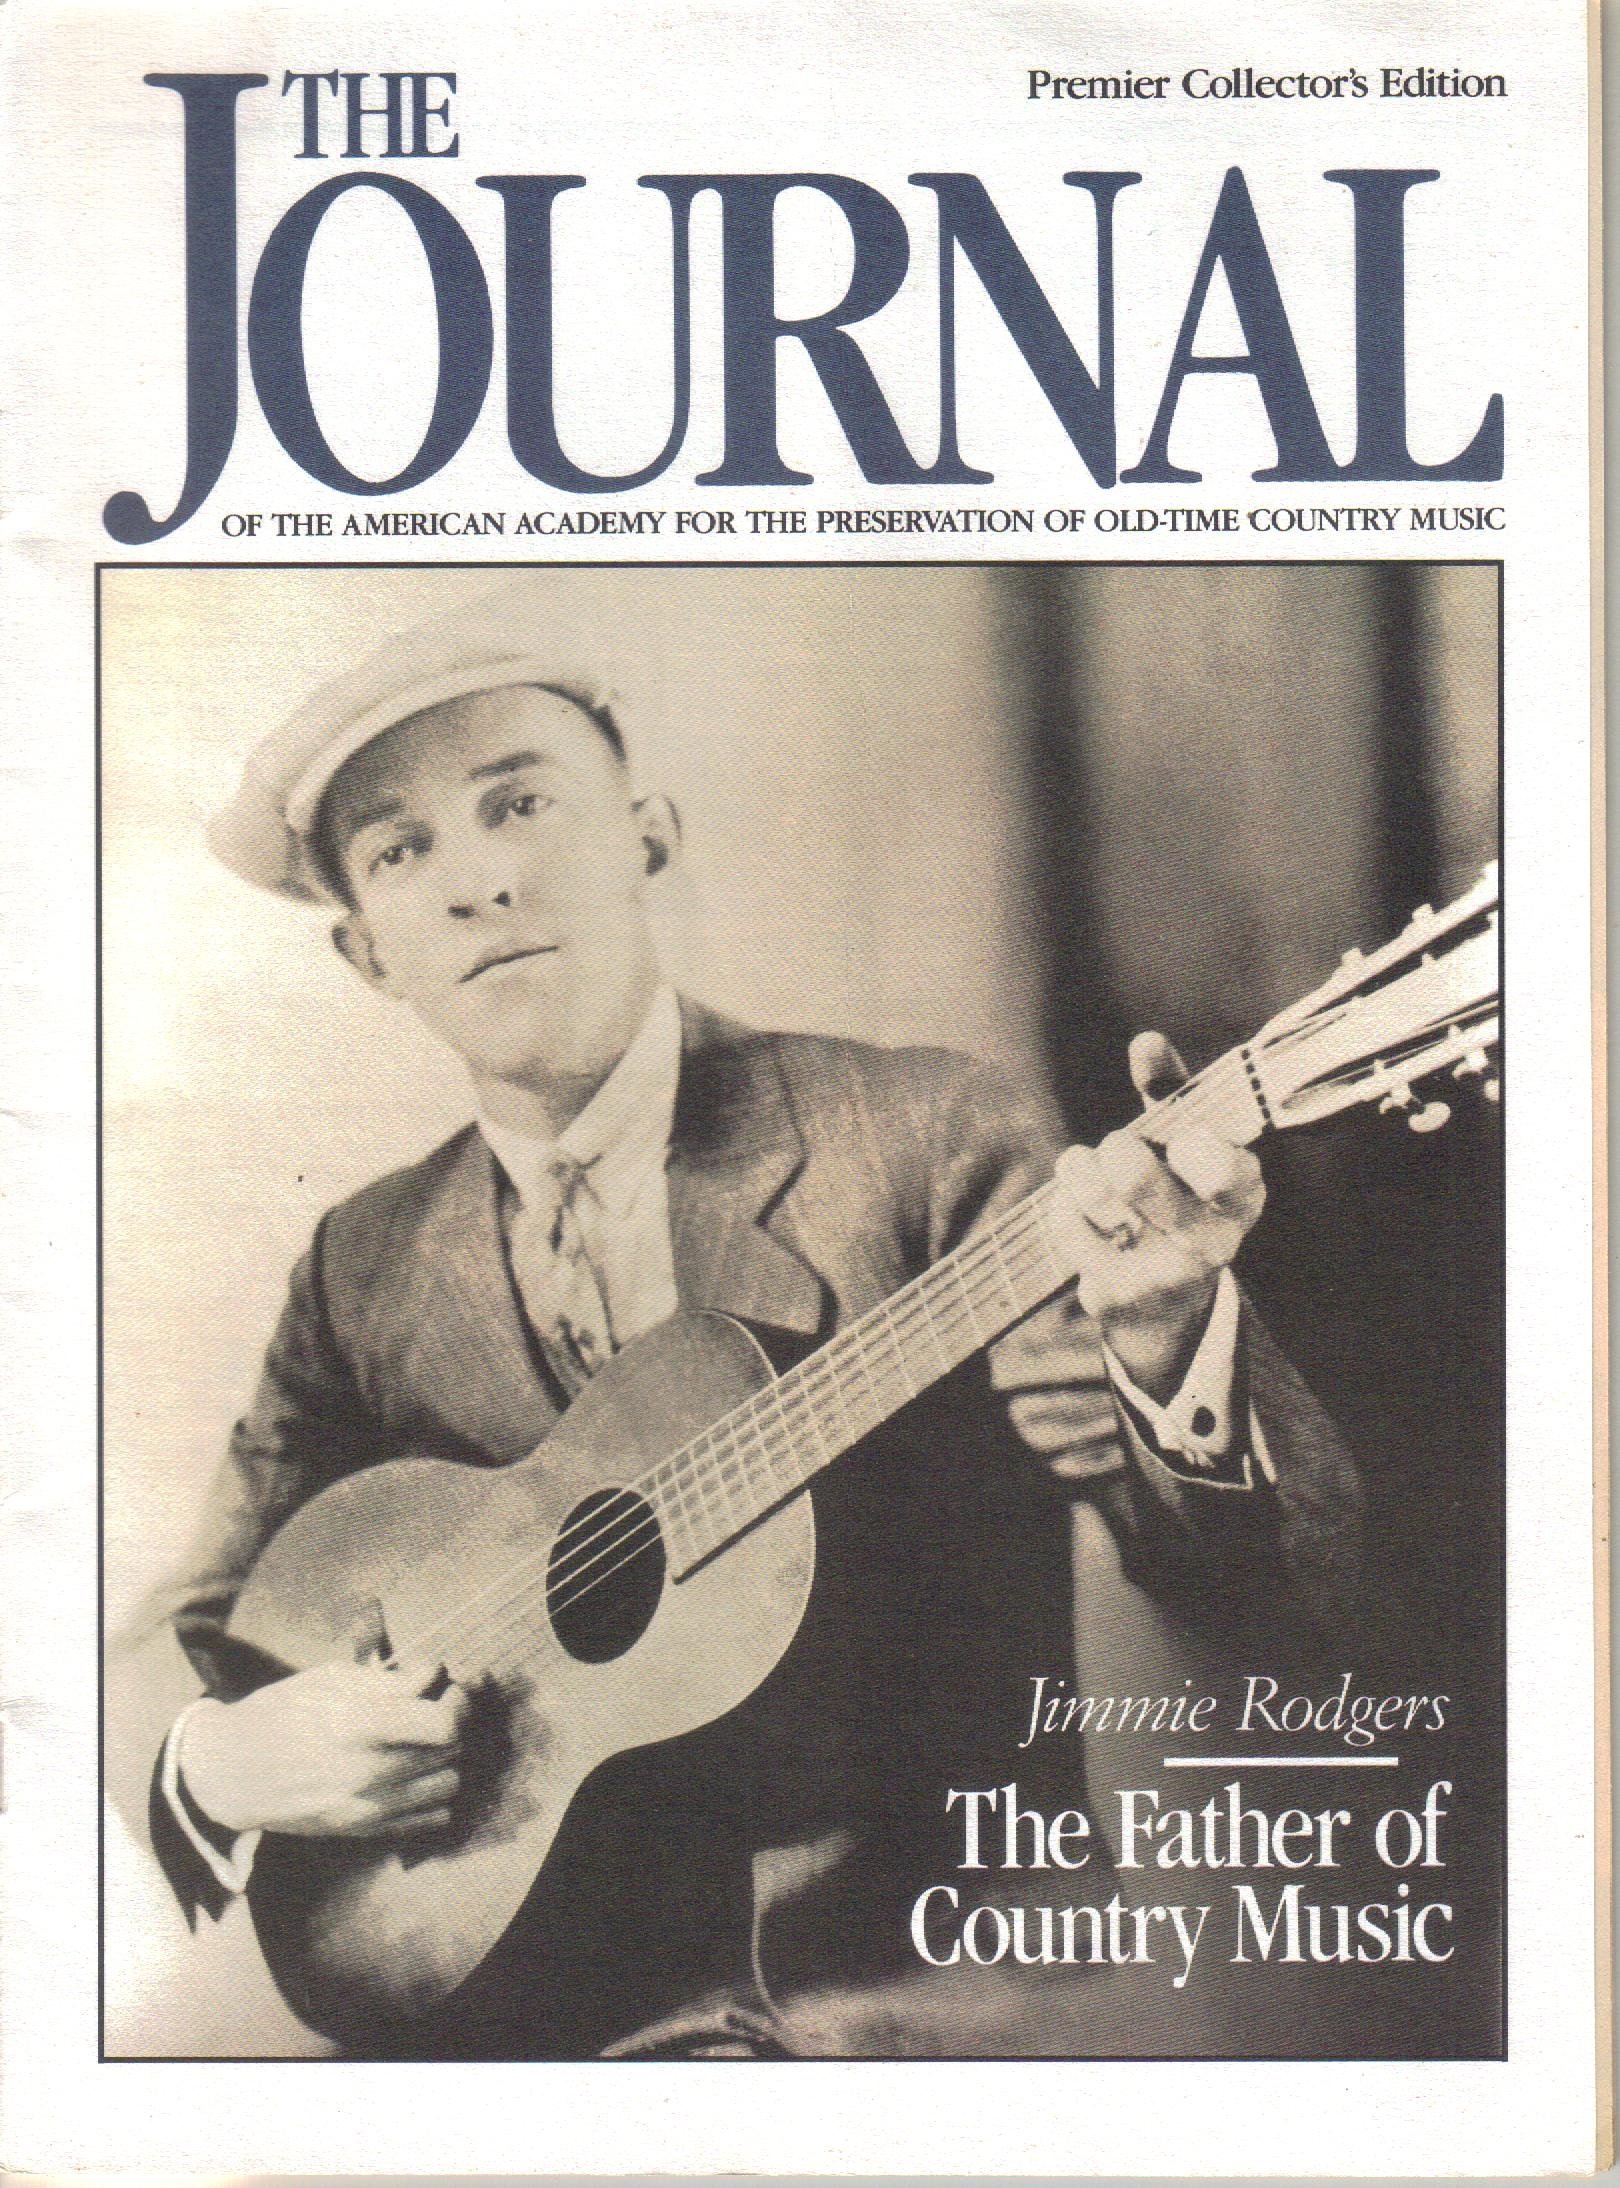 THE JOURNAL OF THE AMERICAN ACADEMY FOR THE PRESERVATION OF OLD-TIME COUNTRY MUSIC Premier Collector's Edition 1991 Volume 1, Number 1 (Jimmie Rodgers The Father of Country Music is on front cover, Hank Williams, Roy Acuff, Uncle Dave Macon, Gene Autry, Bluegrass Bill Monroe, Bob Willis Western Swing, Ernest Tub Honky Tonk Man,, Vol. 1, No. 1)